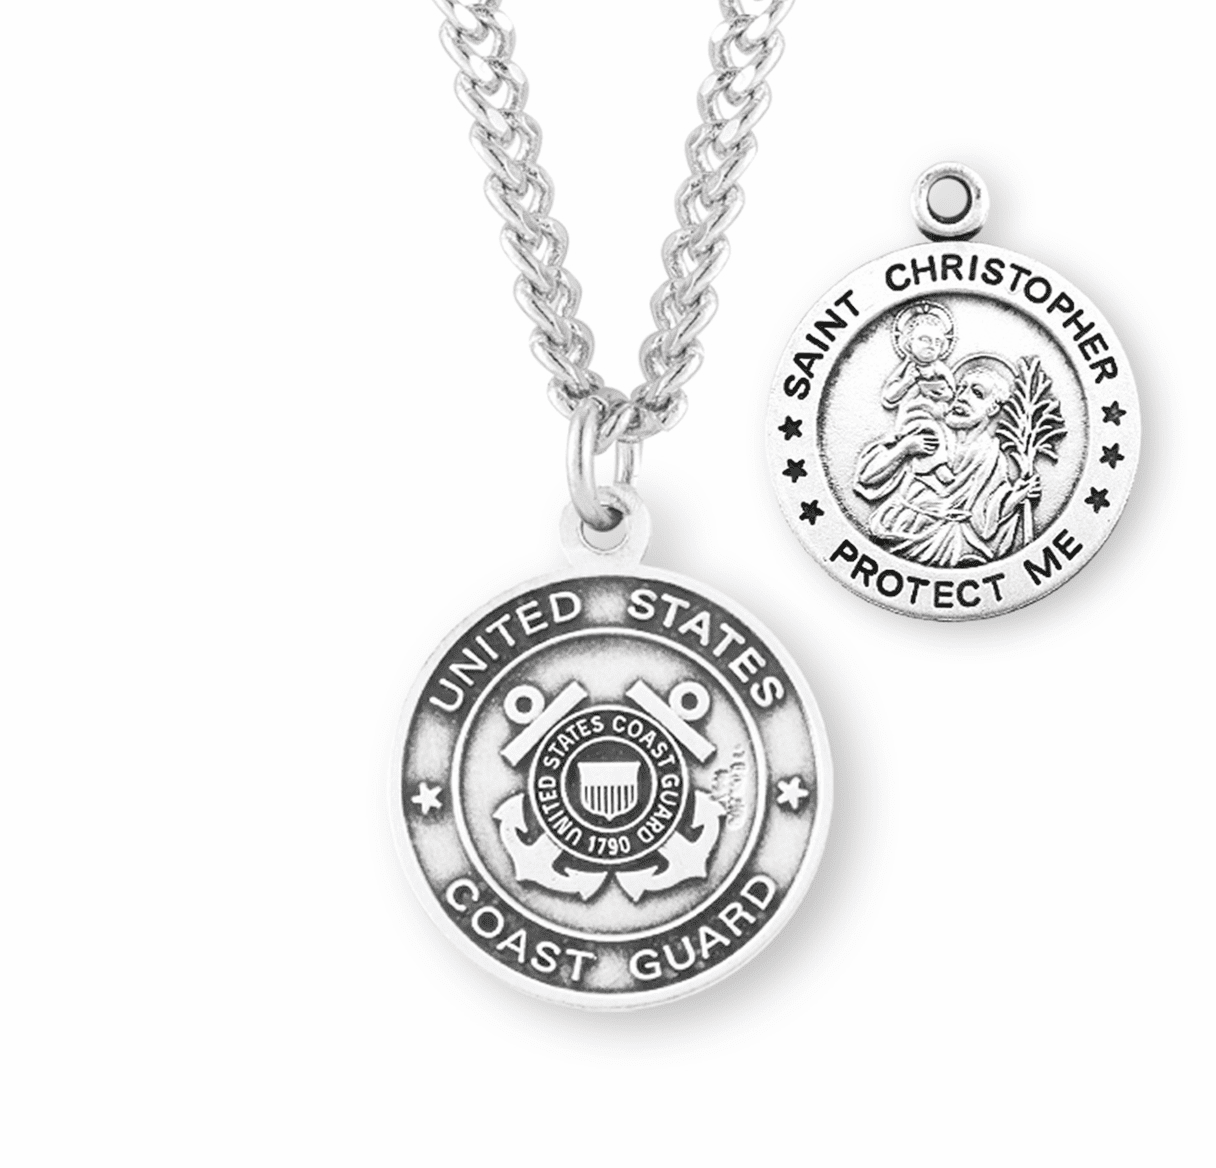 HMH Religious Military St Christopher Coast Guard Sterling Silver Medal Necklace